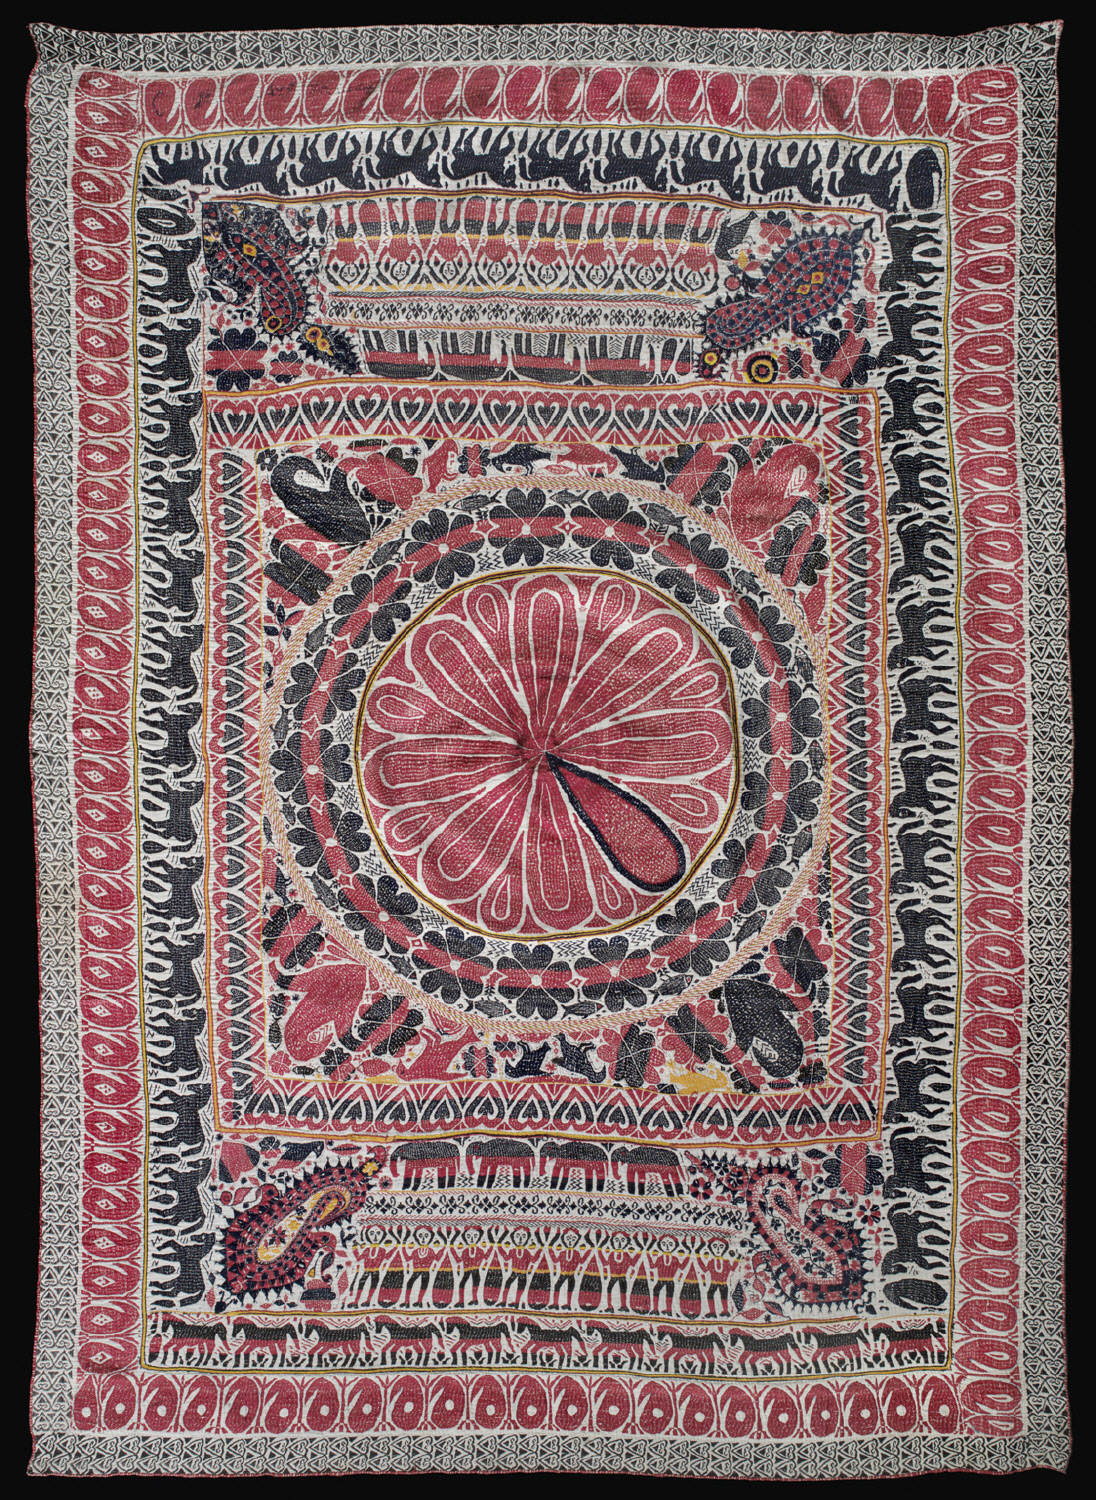 Kantha (Embroidered Quilt)